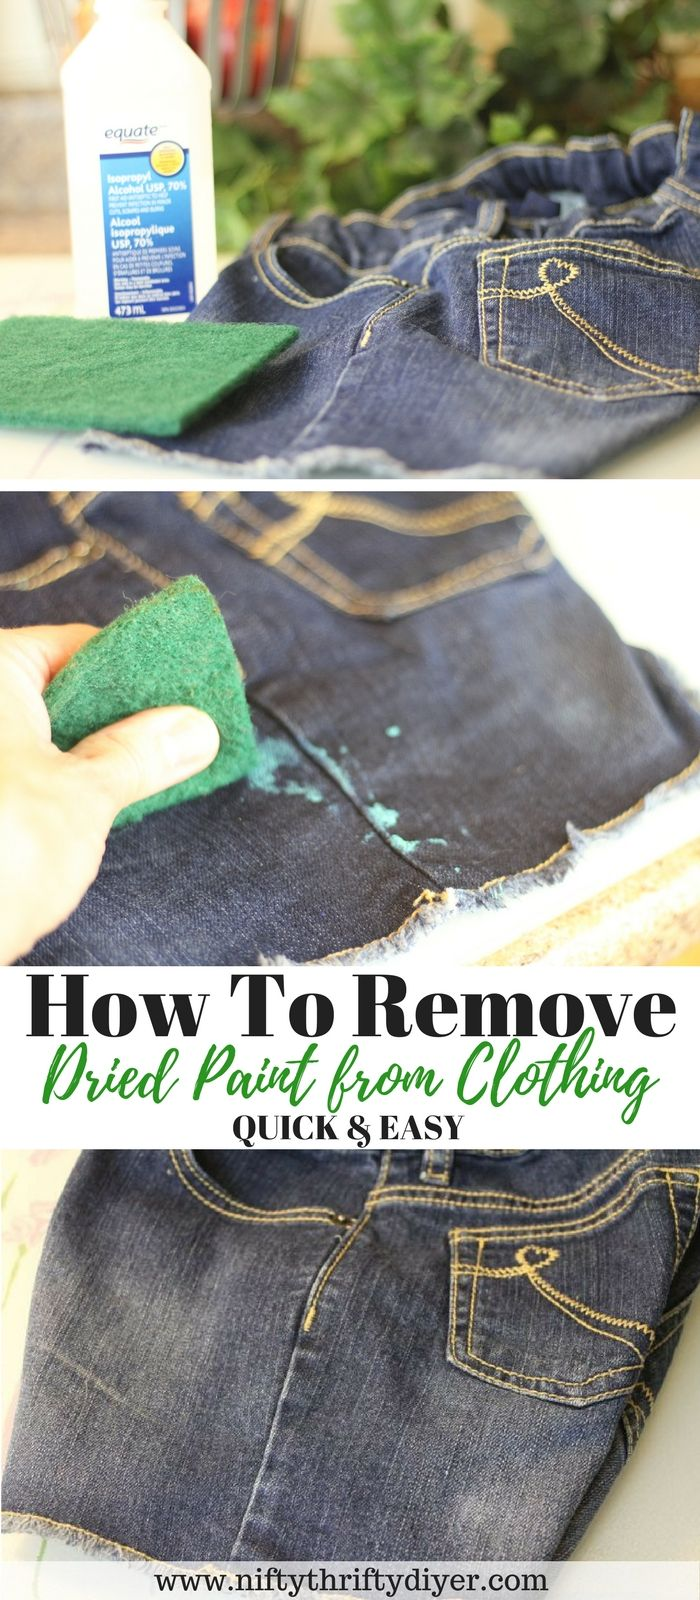 How To Remove Dried Paint From Clothing Quick And Easy With